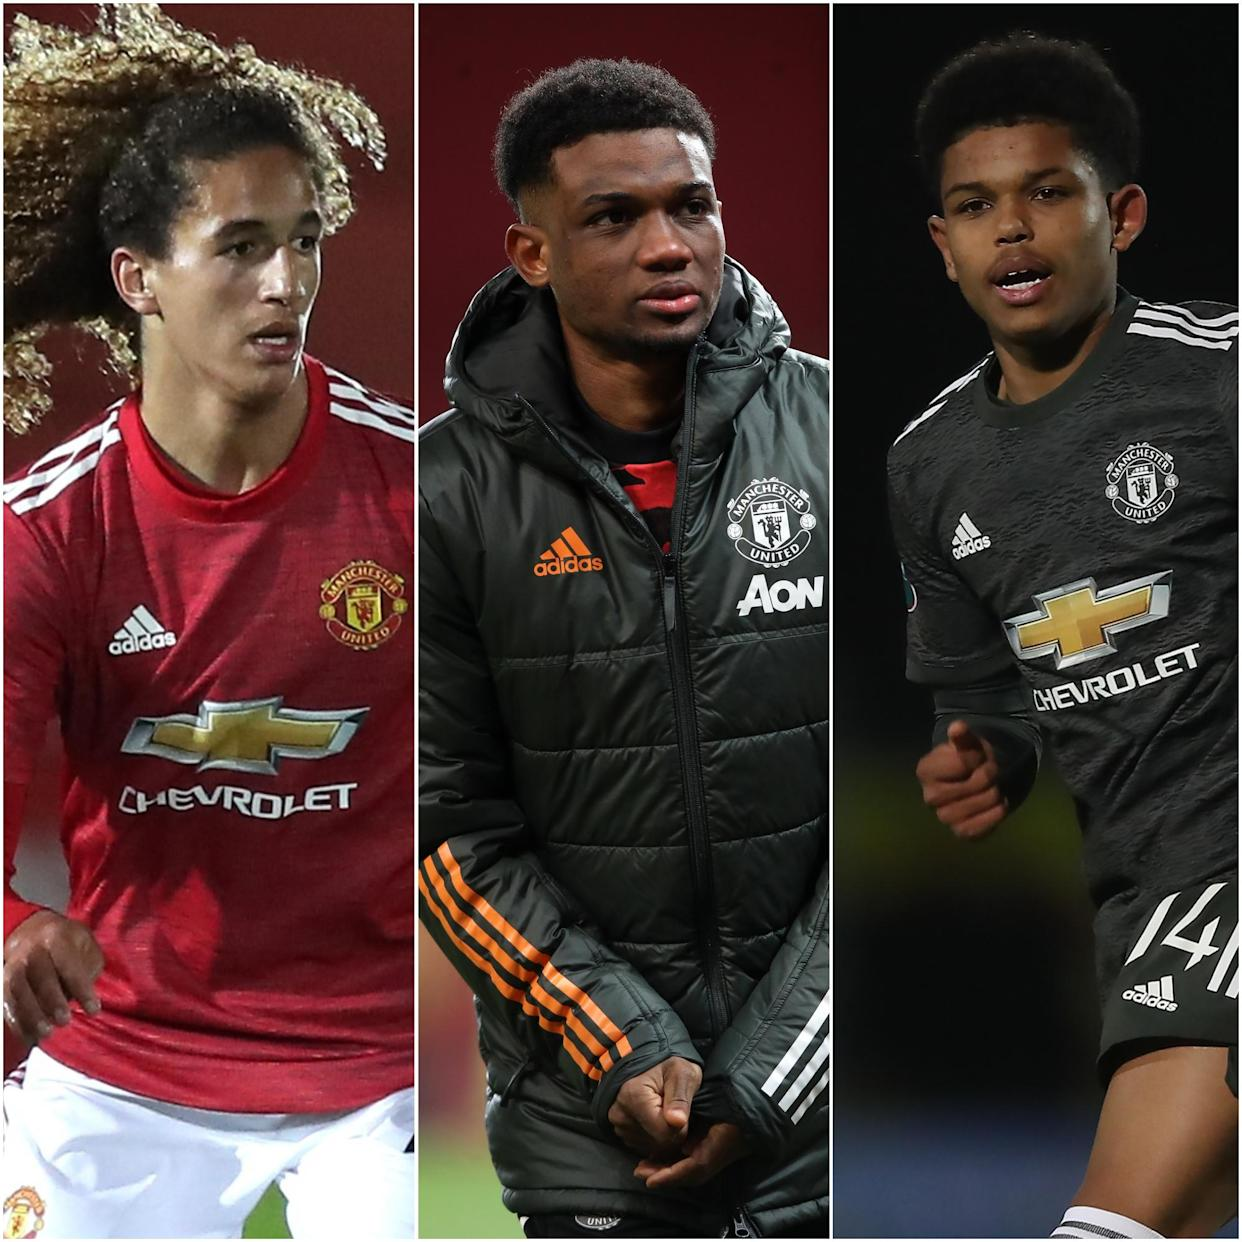 Hannibal Mejbri, Amad Diallo and Shola Shoretire are impressing at Manchester United